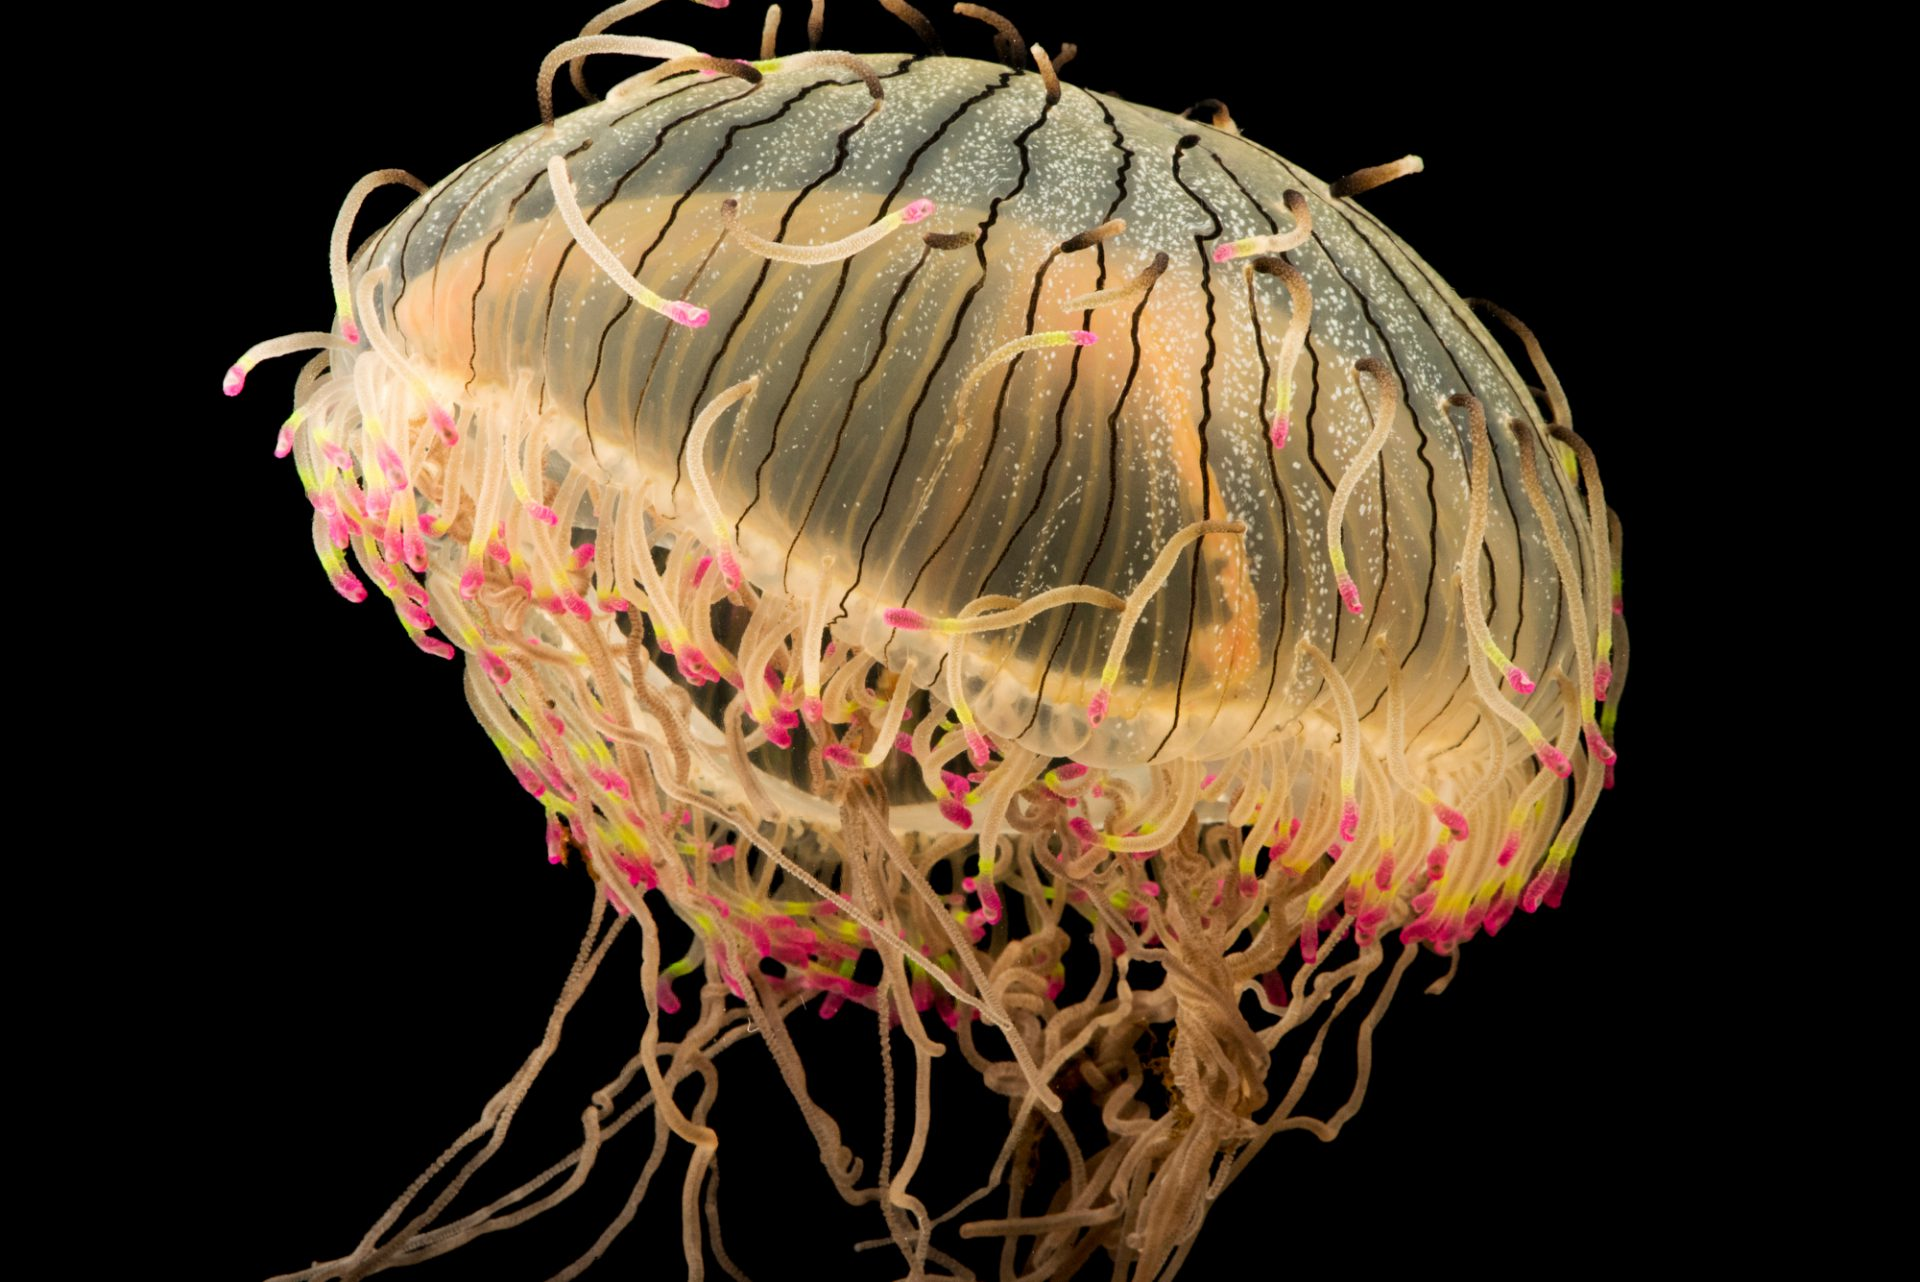 Photo: Flowerhat sea jelly (Olindias formosa) at Aquarium of the Pacific in Long Beach, CA.